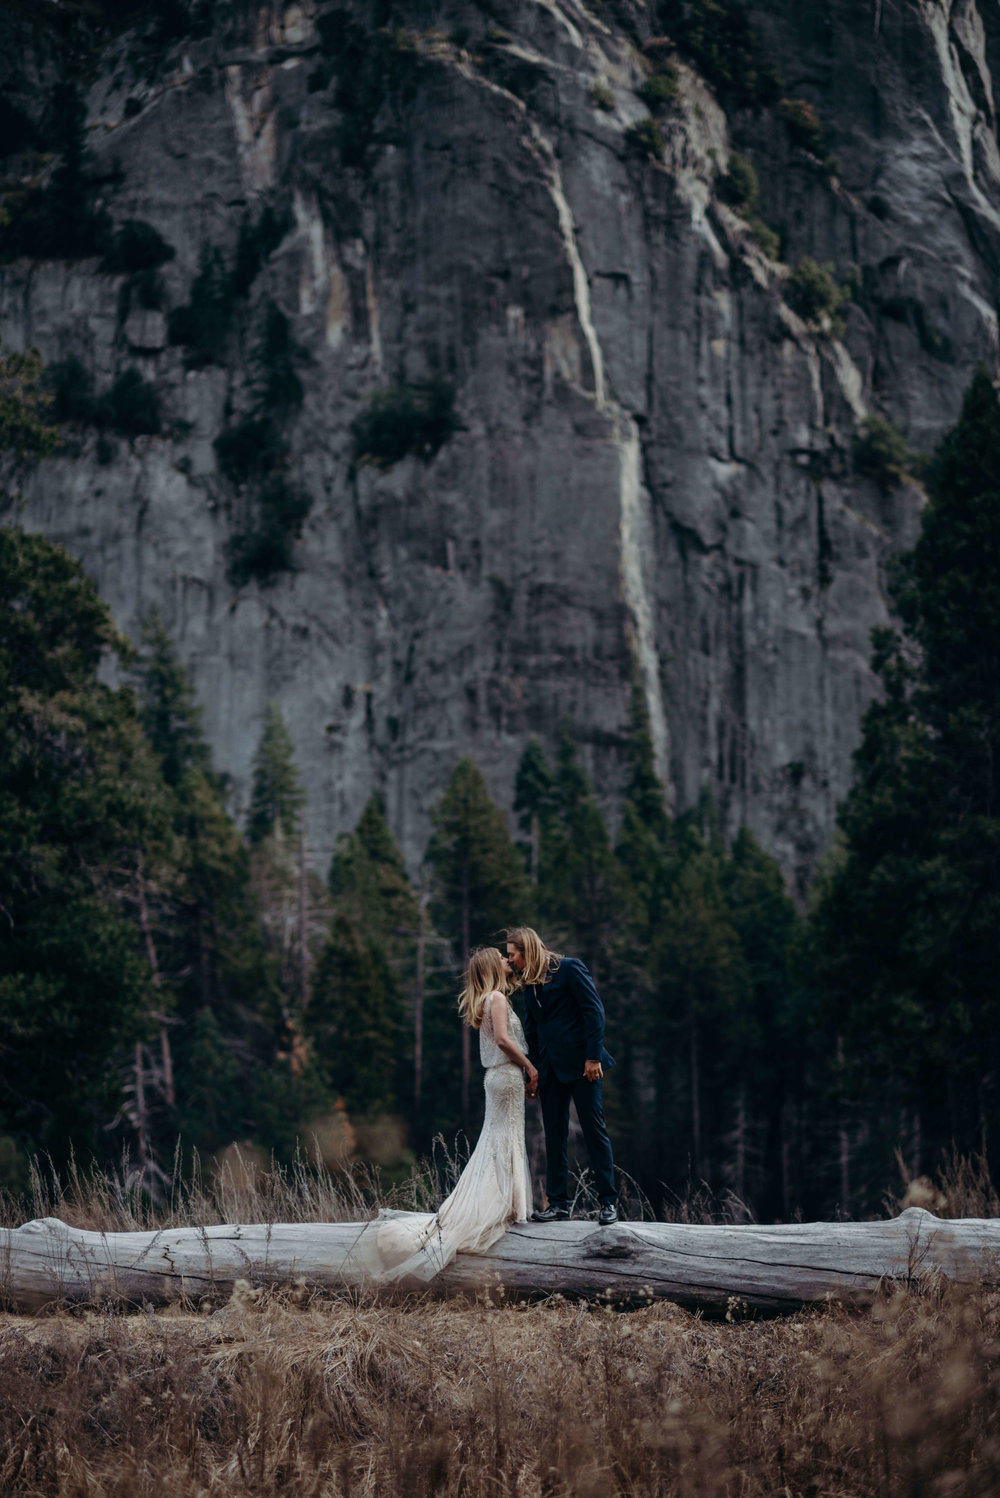 Adventure-Elopement-Yosemite-Valley-14.jpg